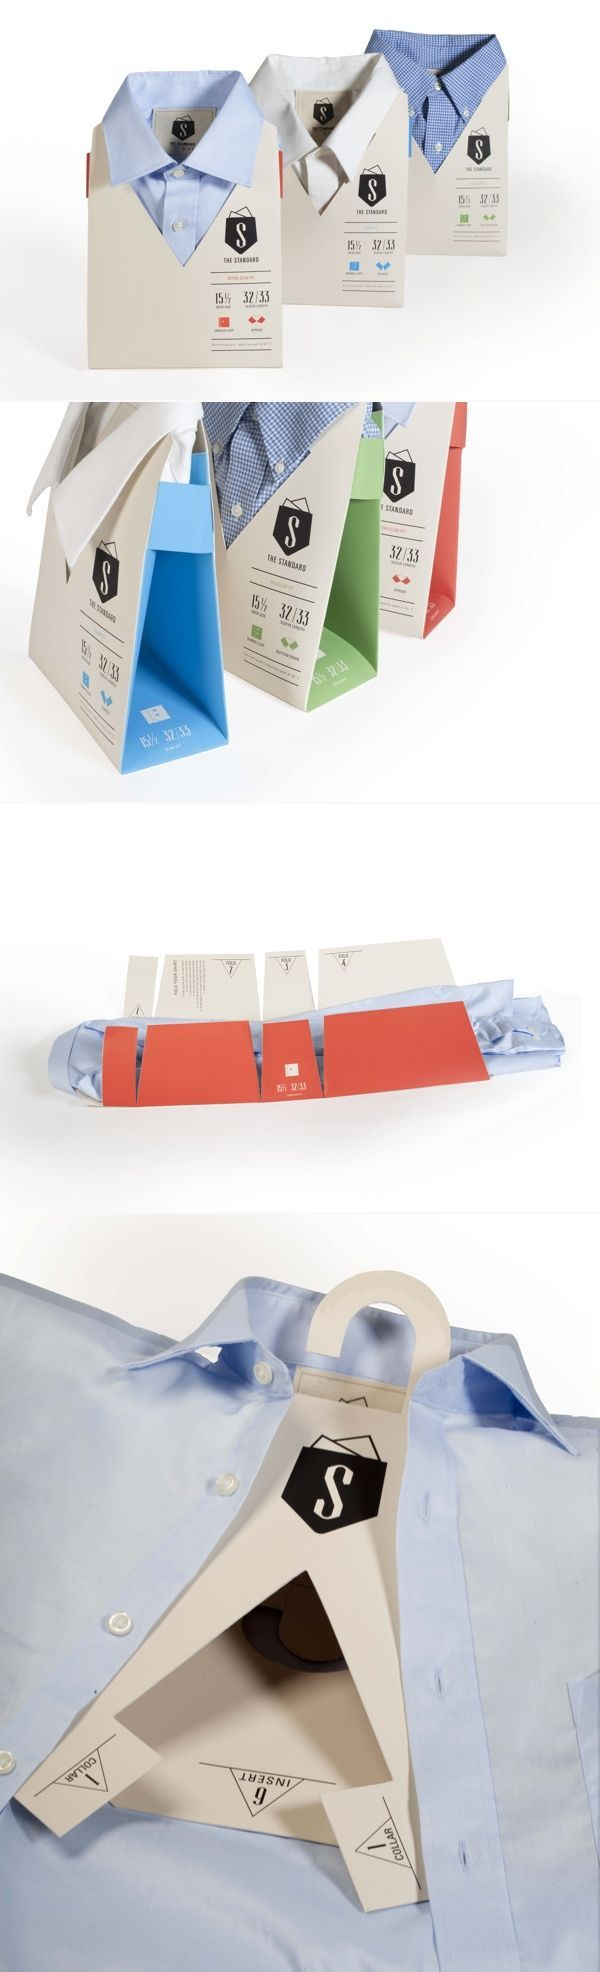 Standard Dress Shirt Packaging - by Jille Natalino, Elizabeth Kelley, Rob Hurst, Joanna Milewski